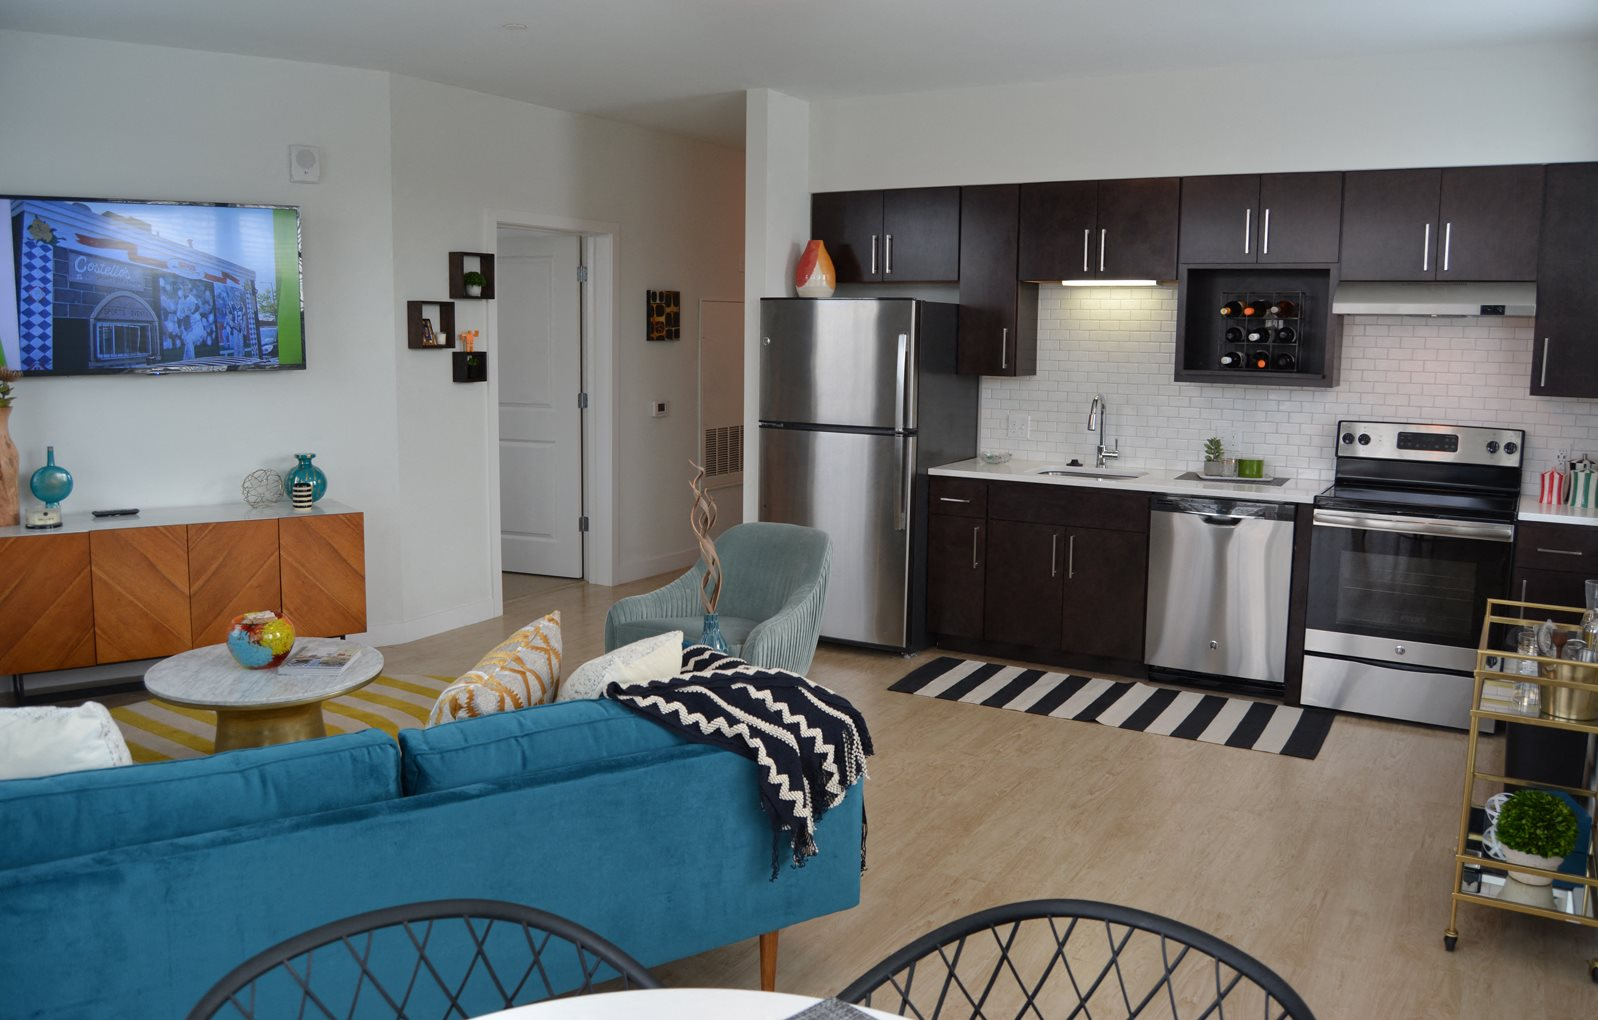 Tribune highlights in addition metromarkapts in addition Tribune highlights moreover Building besides Apartments 18. on co op city apartments two bedroom floor plans